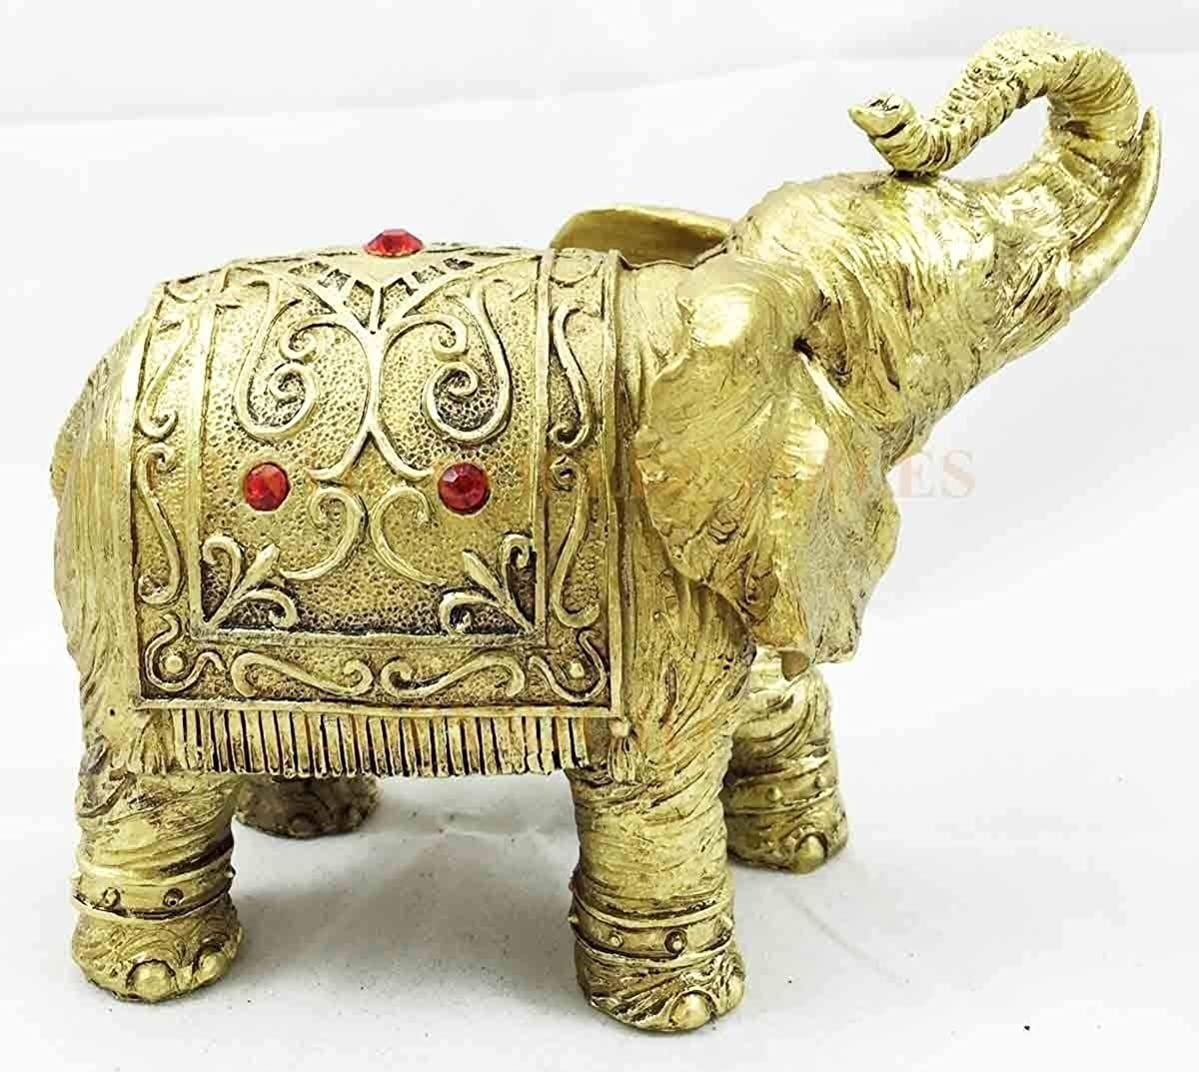 Figurine Thai Buddha Gold Decorated Design Elephant with Trunk Up 5.5